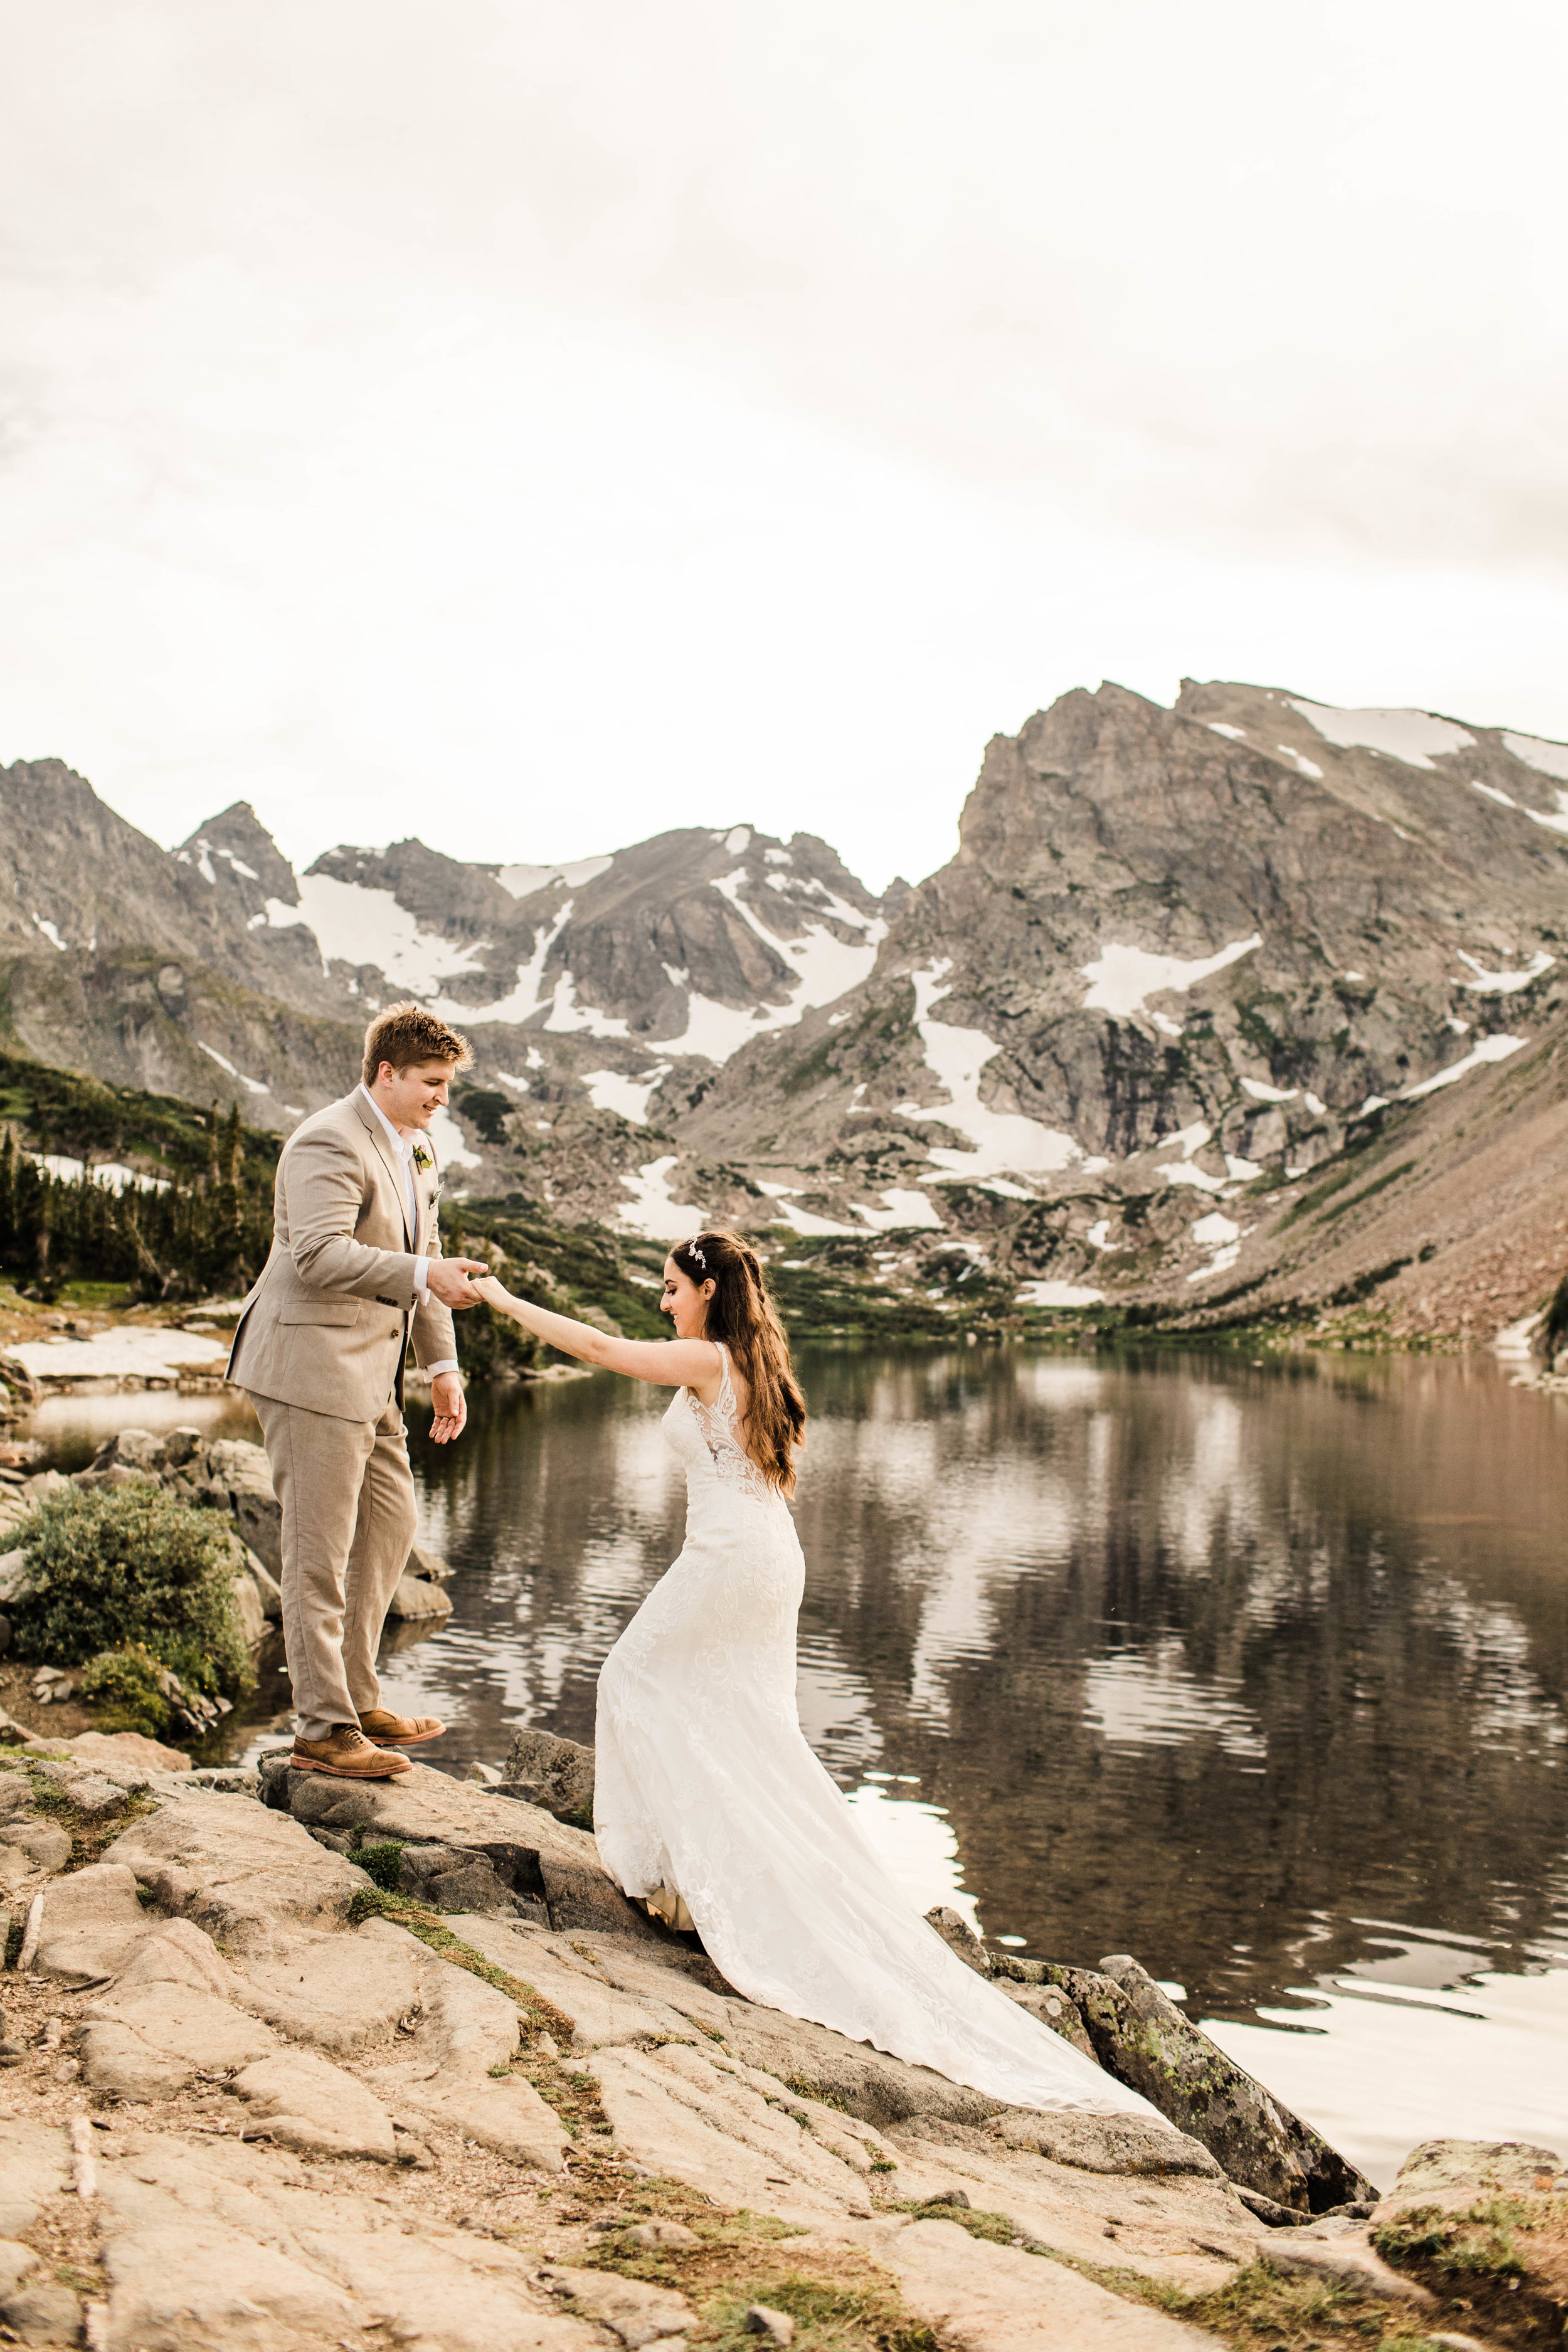 Lakeside adventure elopement in the Colorado Rocky Mountains near Nederland